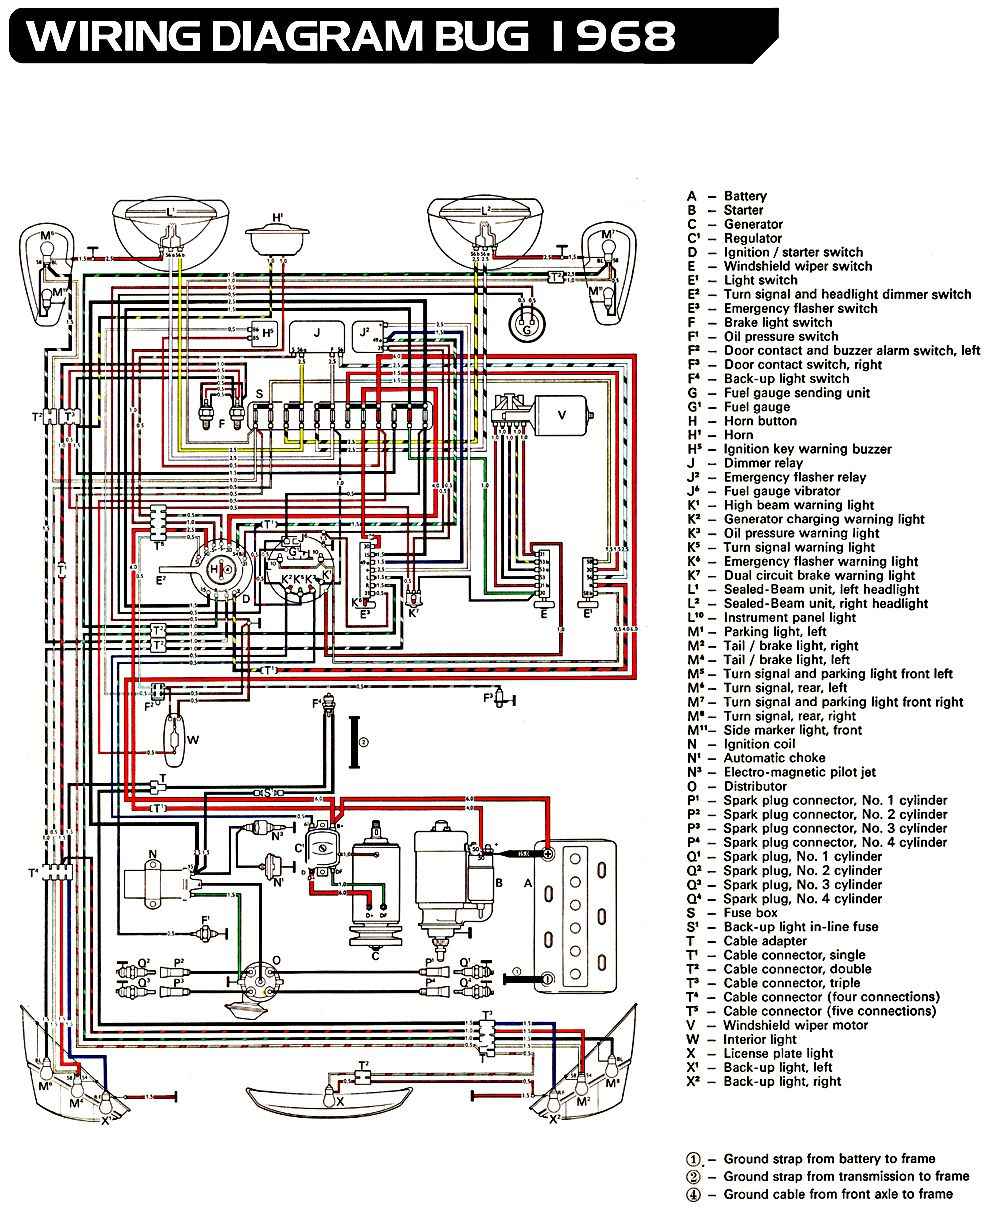 3a1908112d3826270ed5e3be362292bf vw bug ignition wiring diagram 73 vw wiring diagram free new beetle wiring diagram at bayanpartner.co